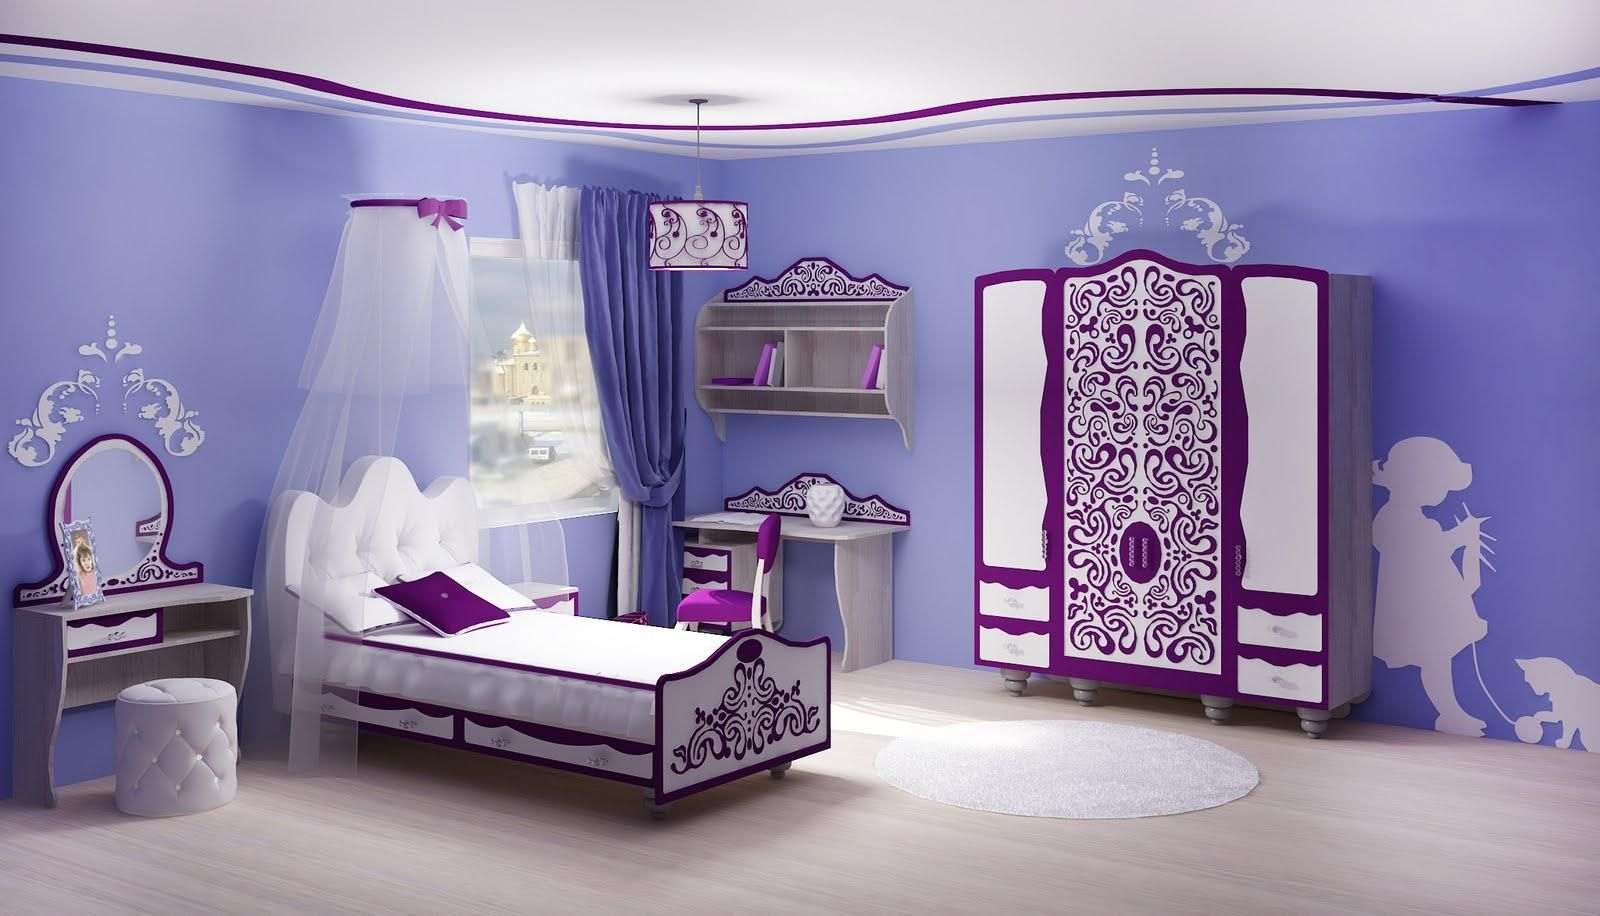 Fabulous bedroom paint ideas with light blue painting wall - Purple and light blue bedroom ideas ...